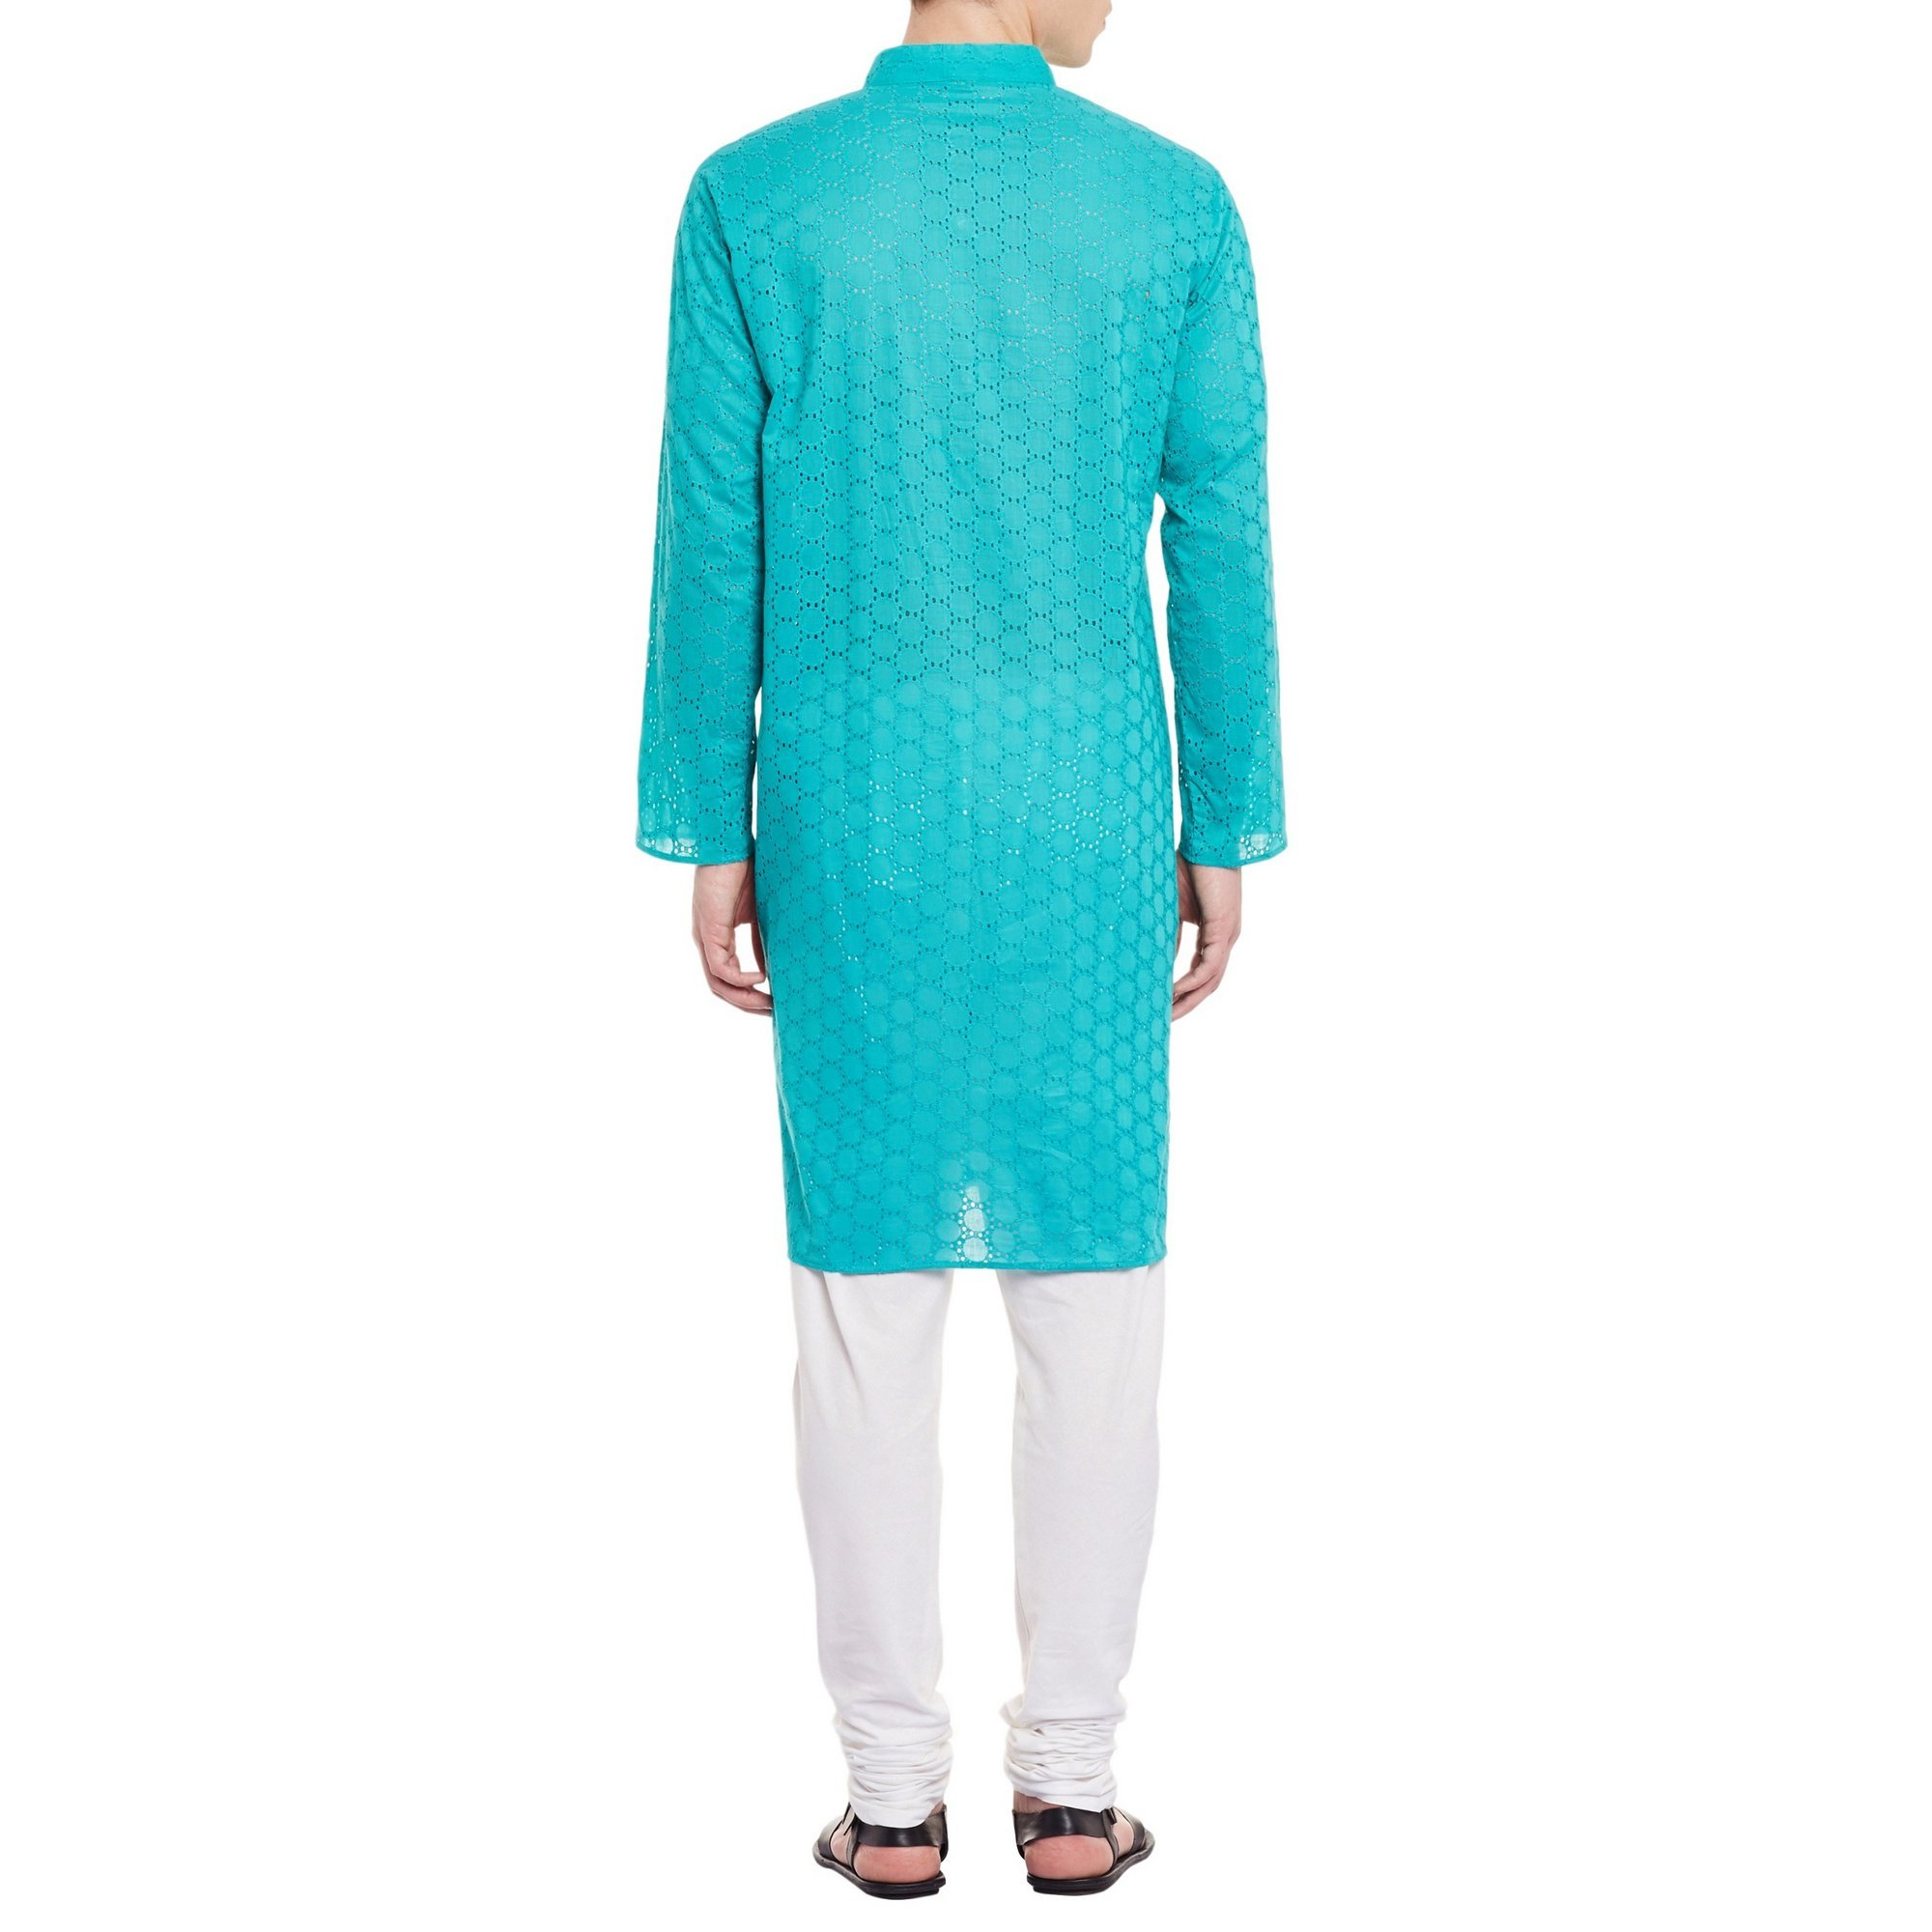 Mens Embroidered Cutwork Cotton Kurta With Churidar Pajama Trousers Machine Embroidery,Turquoise Chest Size: 34 Inch by ShalinIndia (Image #2)